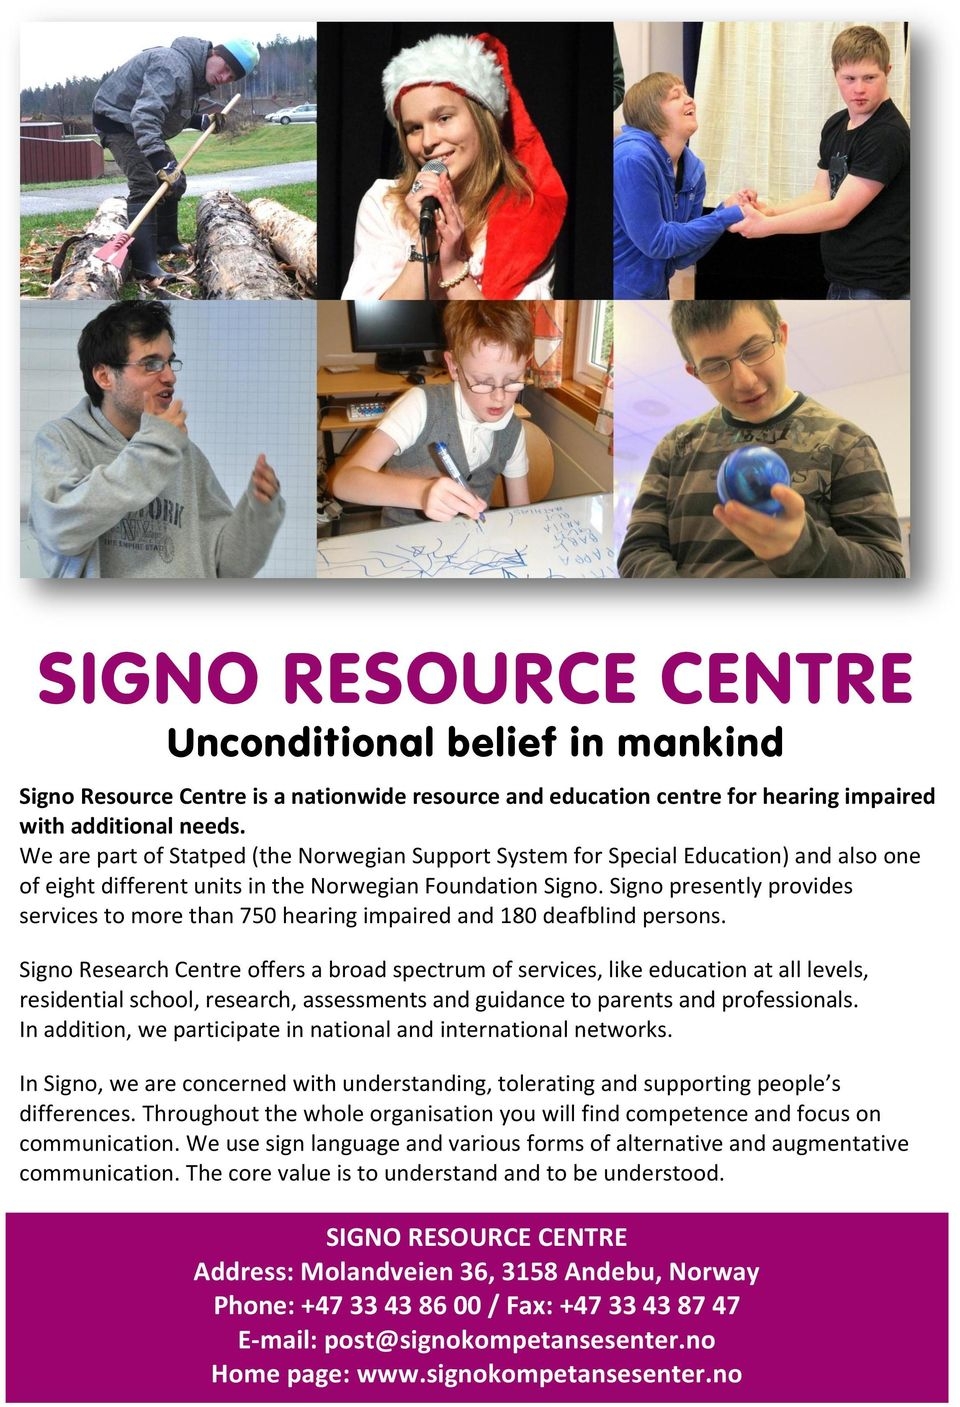 Signo presently provides services to more than 750 hearing impaired and 180 deafblind persons.